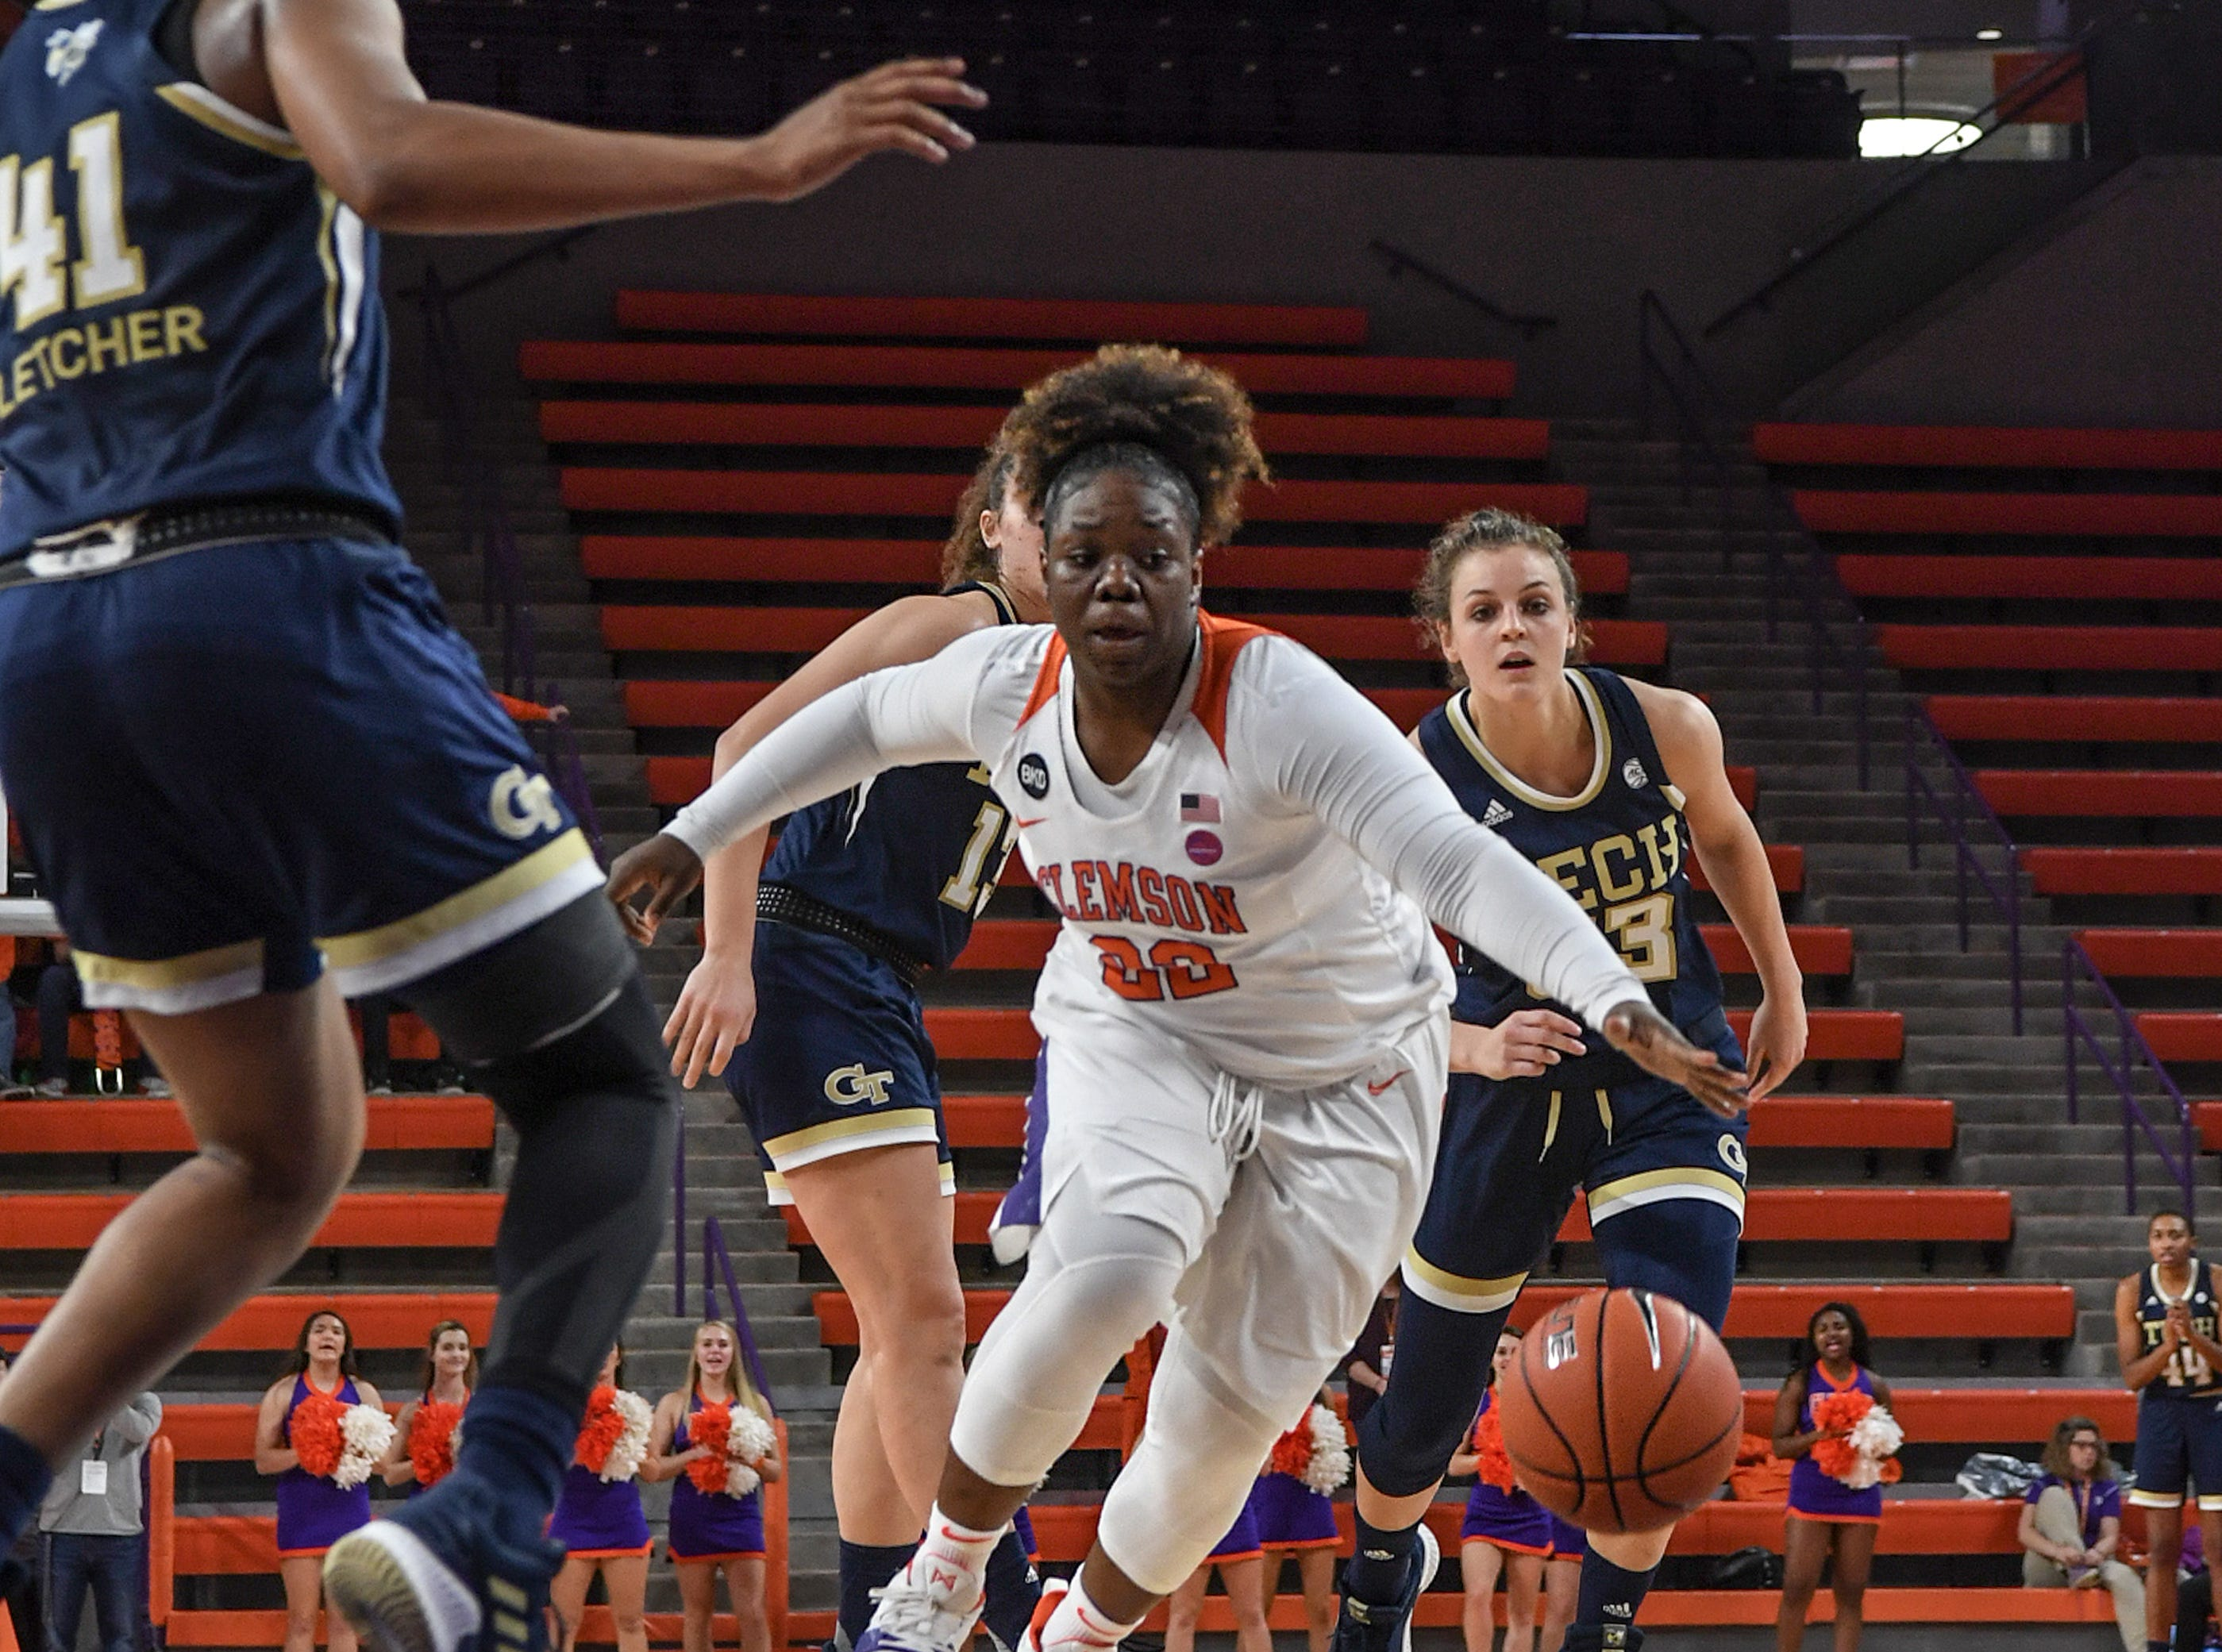 Clemson guard Keniece Purvis(22) dribbles near Georgia Tech guard Kierra Fletcher(41) during the fourth quarter at Littlejohn Coliseum in Clemson Thursday, January 17, 2019.